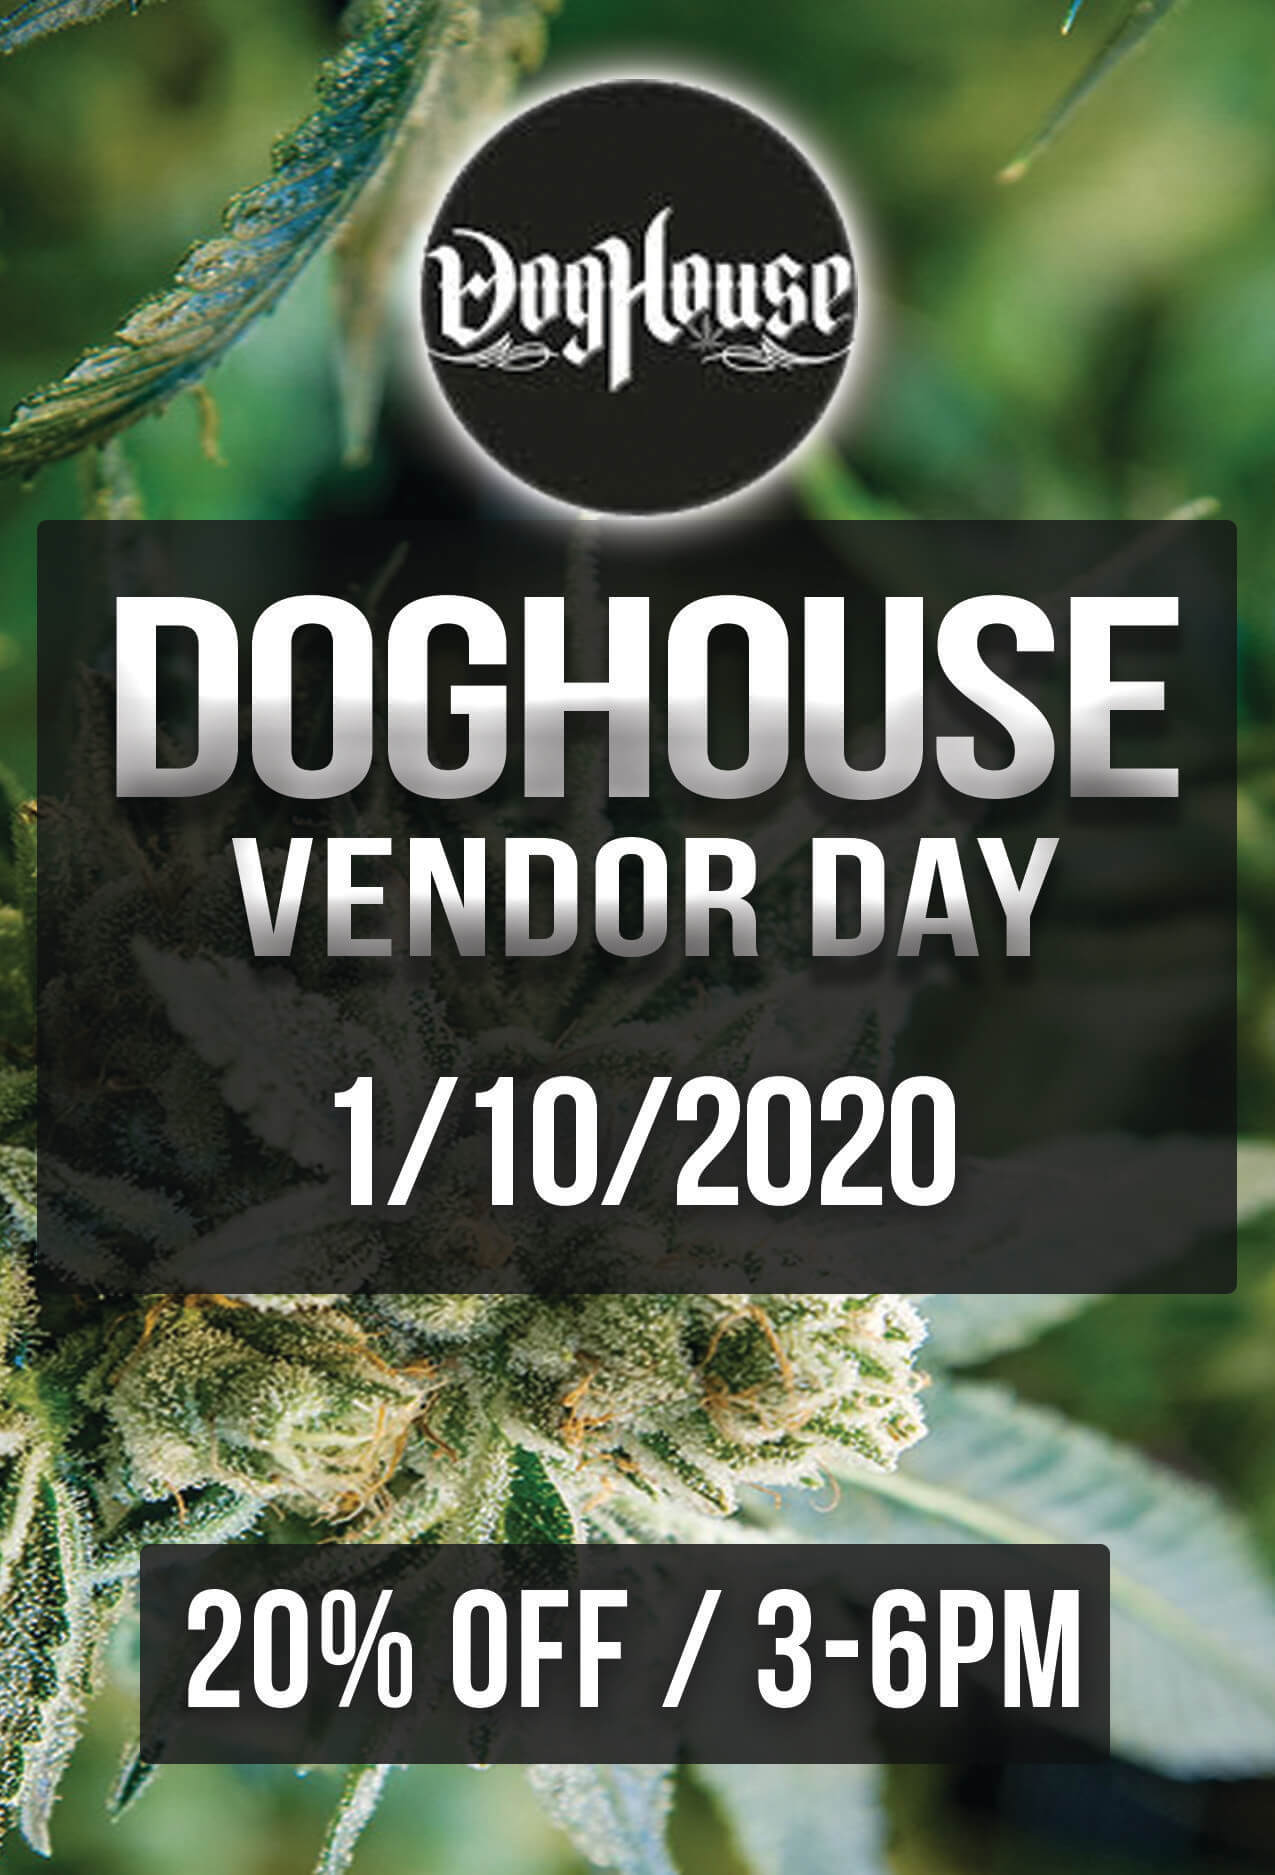 DOGHOUSE Vendor Day – 1/10/2020